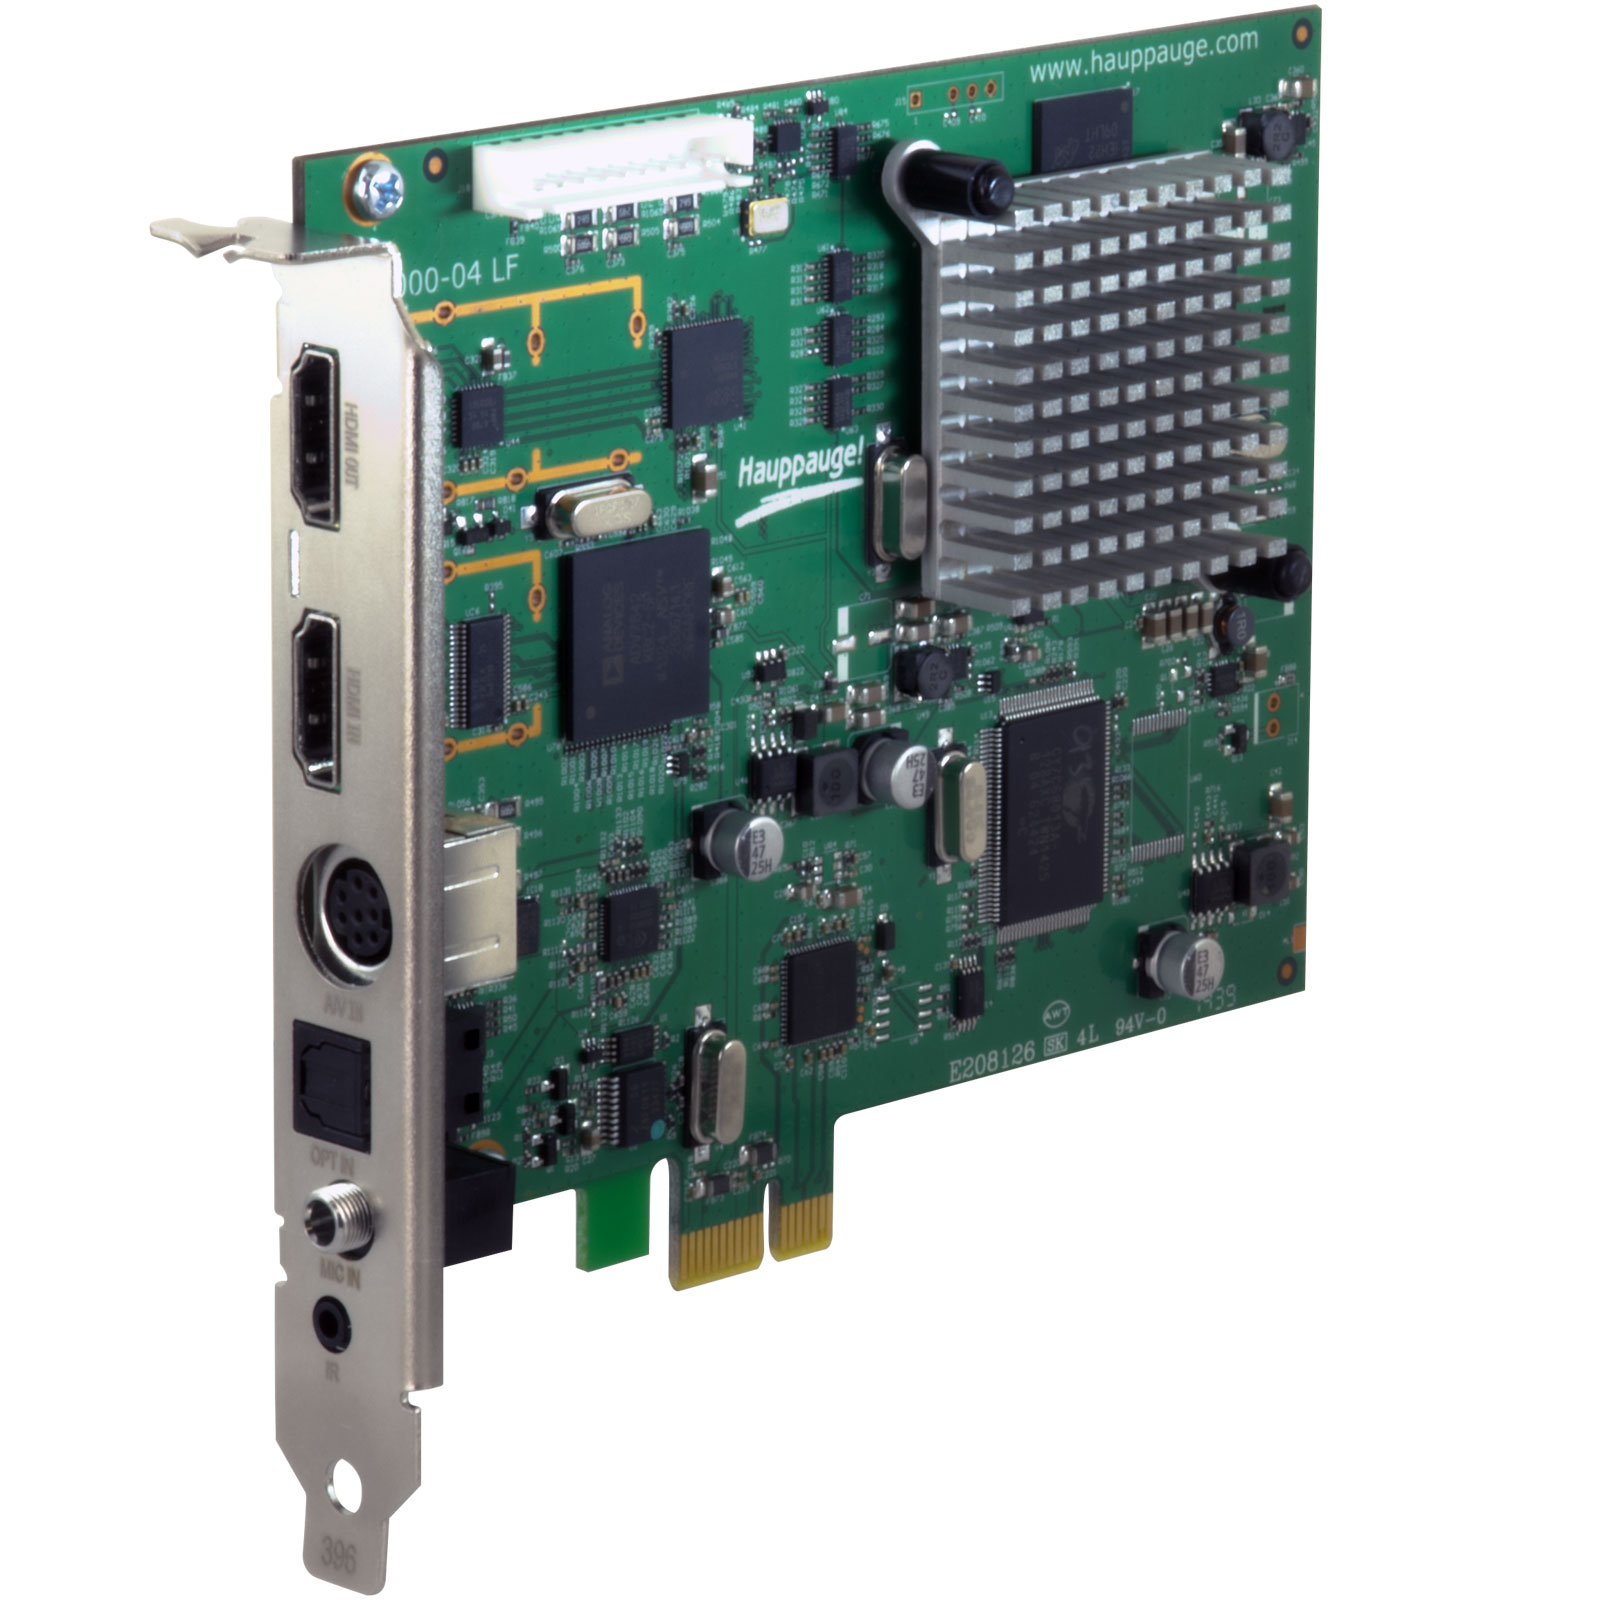 GIGABYTE Z77N WiFi Motherboard Review in addition Samsung Gear S3 Frontier Space Grey also PCAN USB 199 0 as well Benchmarking Usb 2 0 Vs 3 0 Sata Dock Performance moreover Best Program To Edit Windows 8 Folder Icons. on usb to pci express card